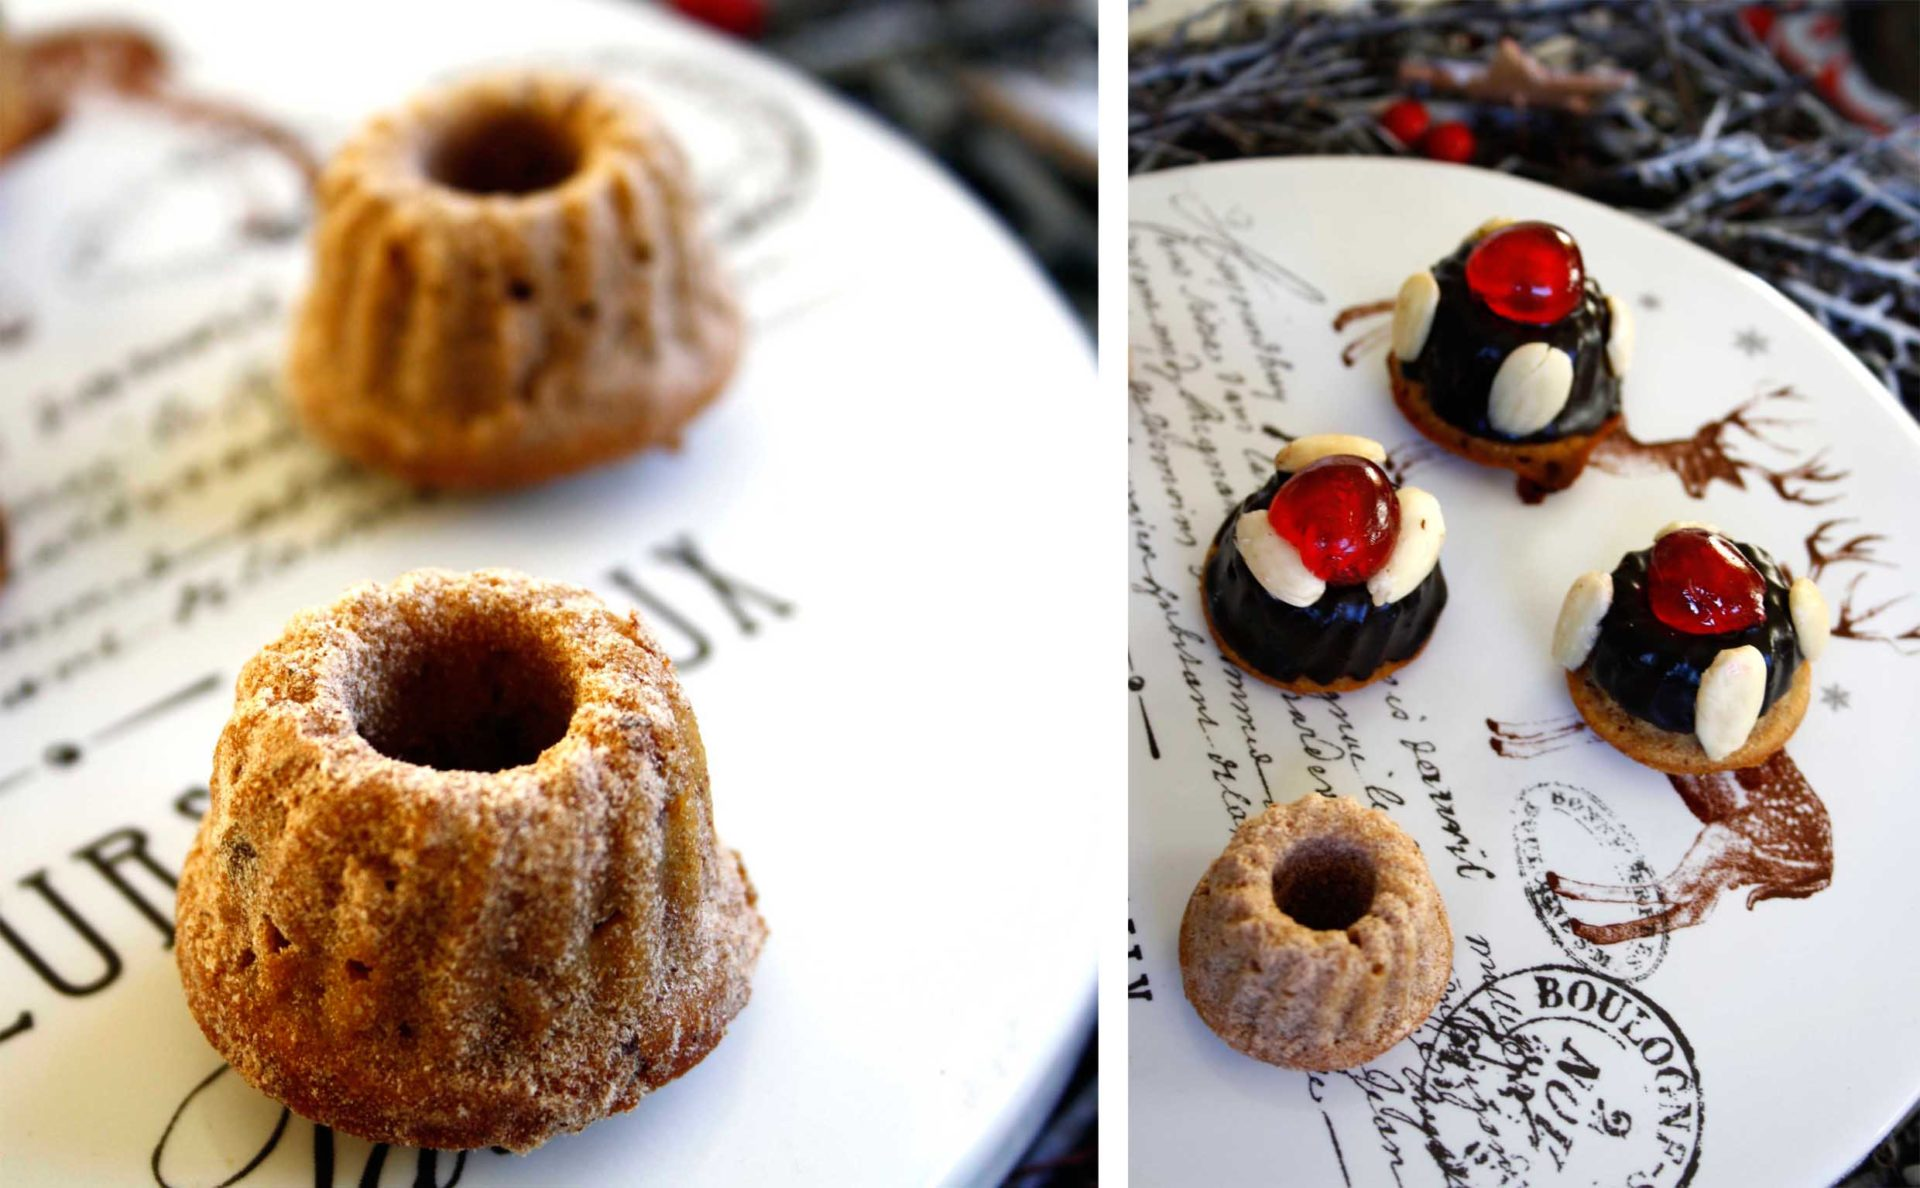 Gugl mit Weihnachtsgewürzen, Marzipan, Rum und Cranberrys // Weihnachtsgugel mit Rum // Mini Christmas Bundt cake with rum by http://babyrockmyday.com/weihnachtsgugel-mit-rum/